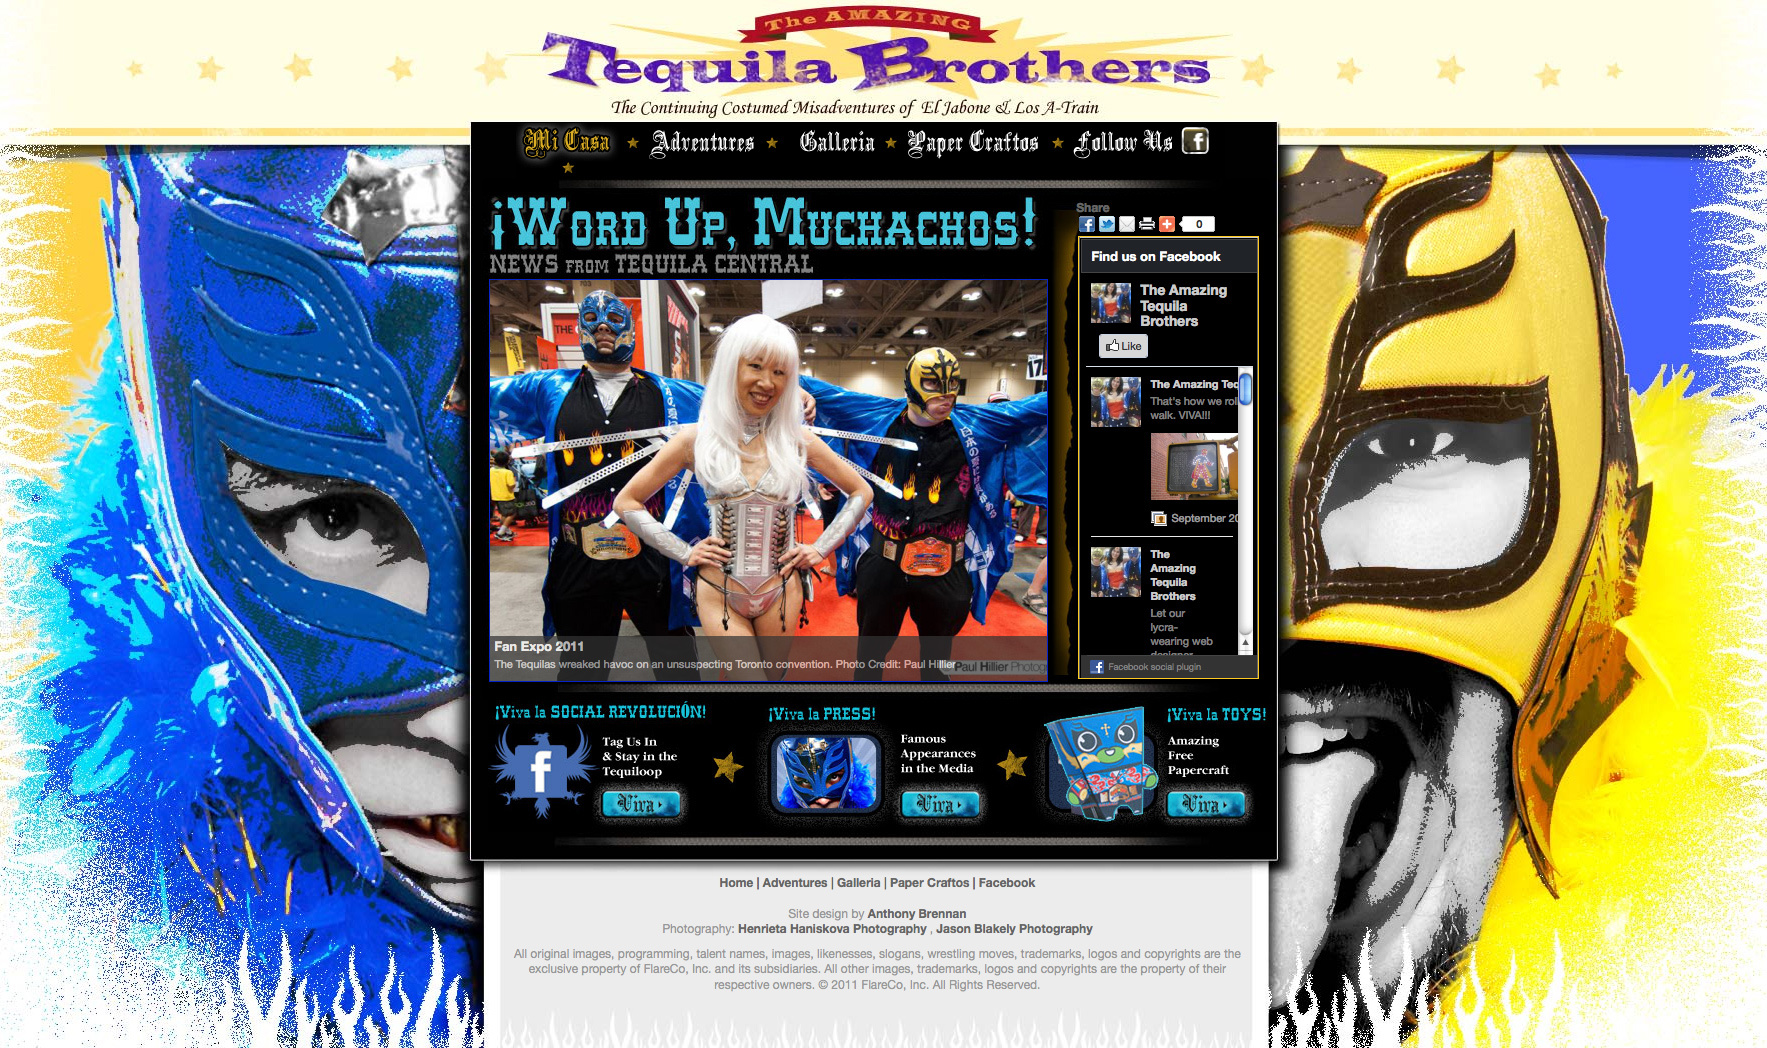 The Amazing Tequila Brothers